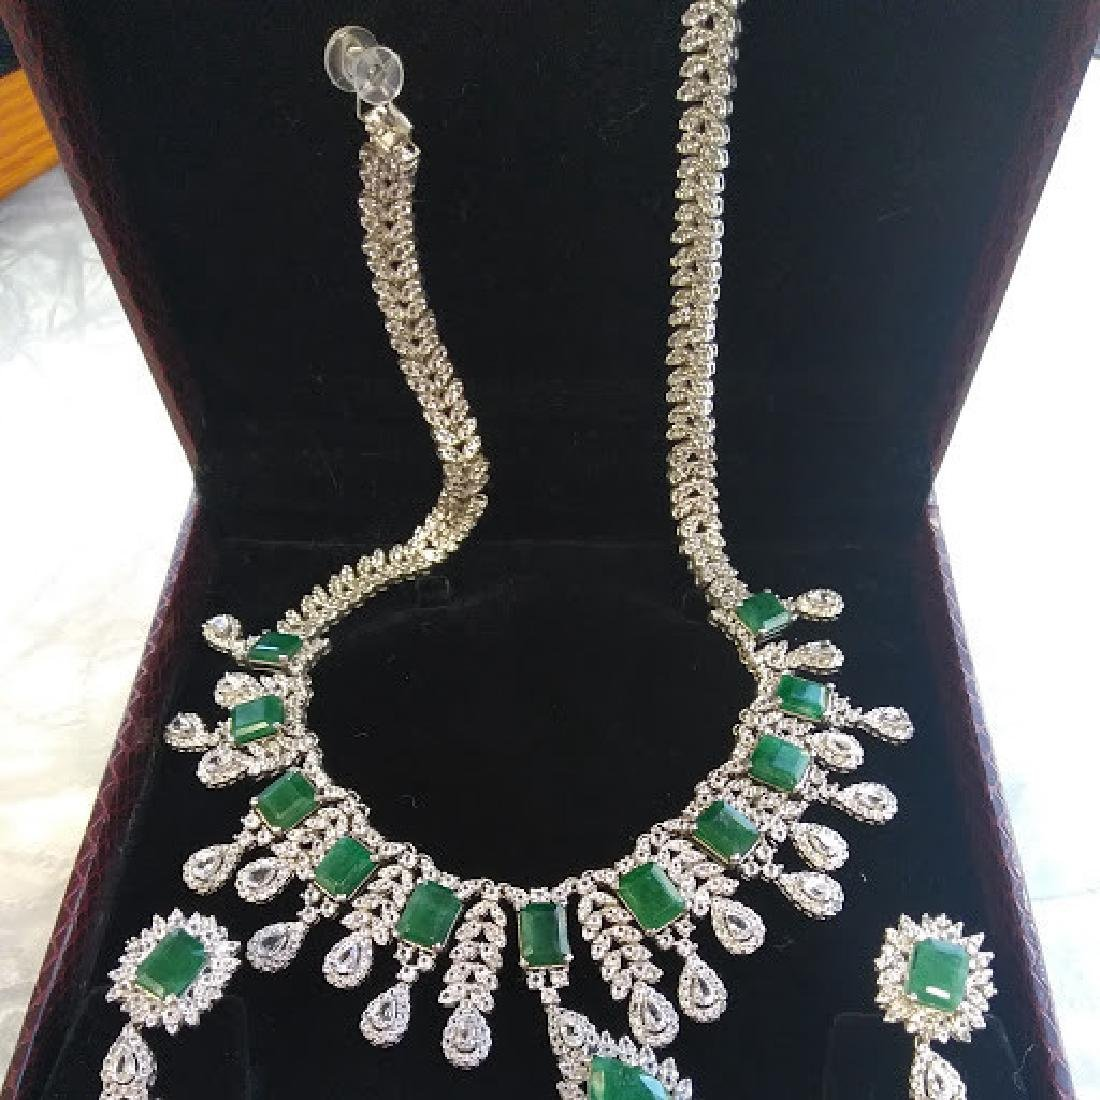 Breathtaking Emerald & Precious Gem Necklace & Earring